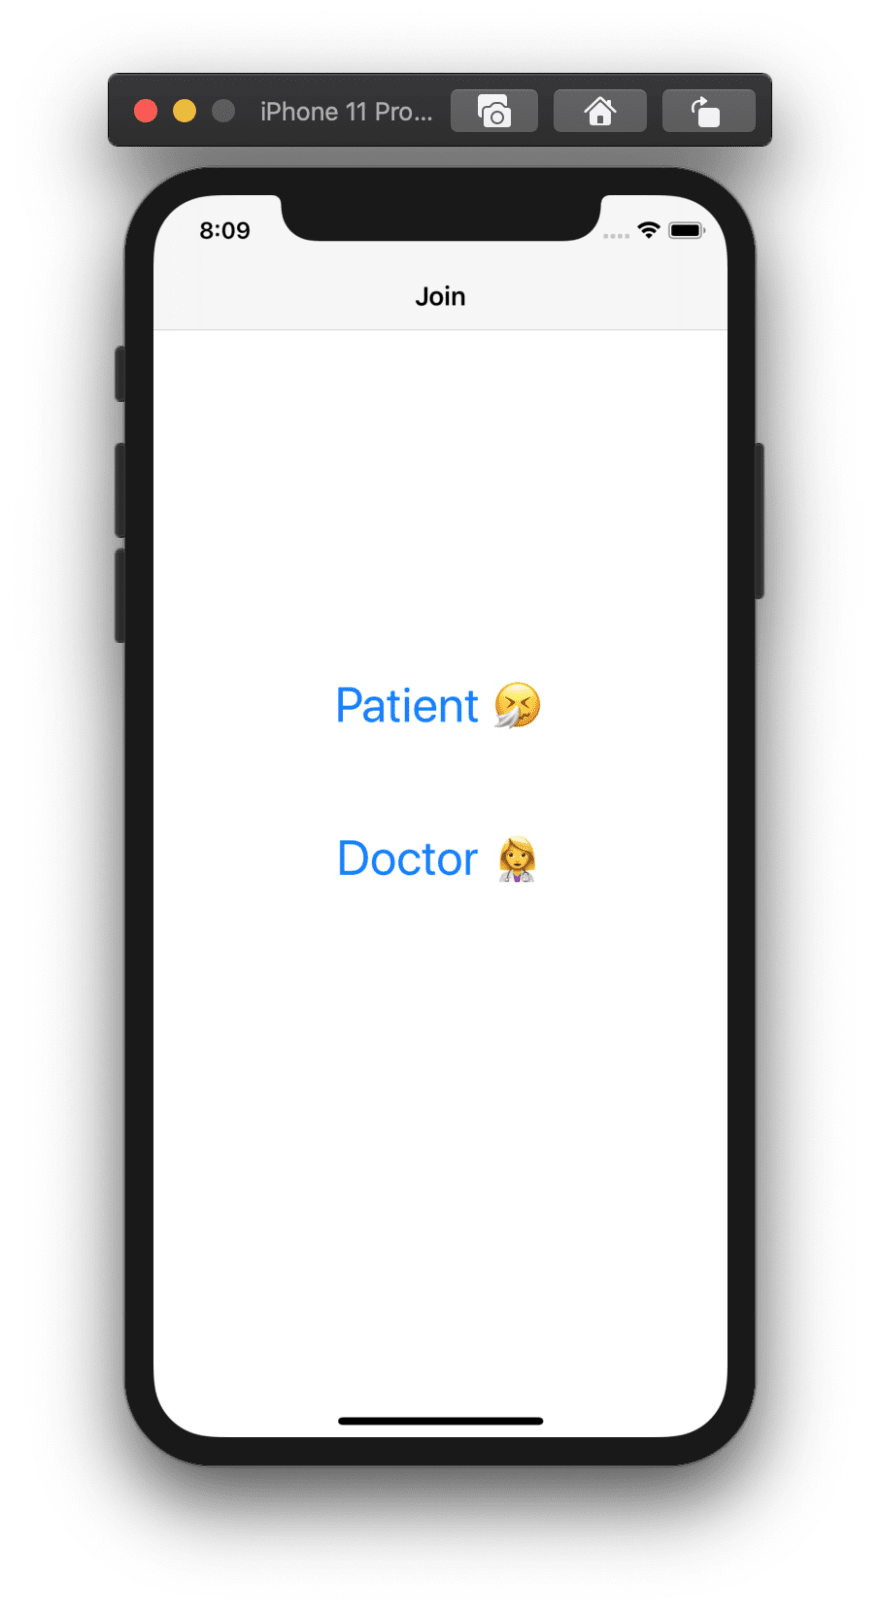 Screenshot shows an app with two buttons, one to join as the patient, and the other to join as the doctor